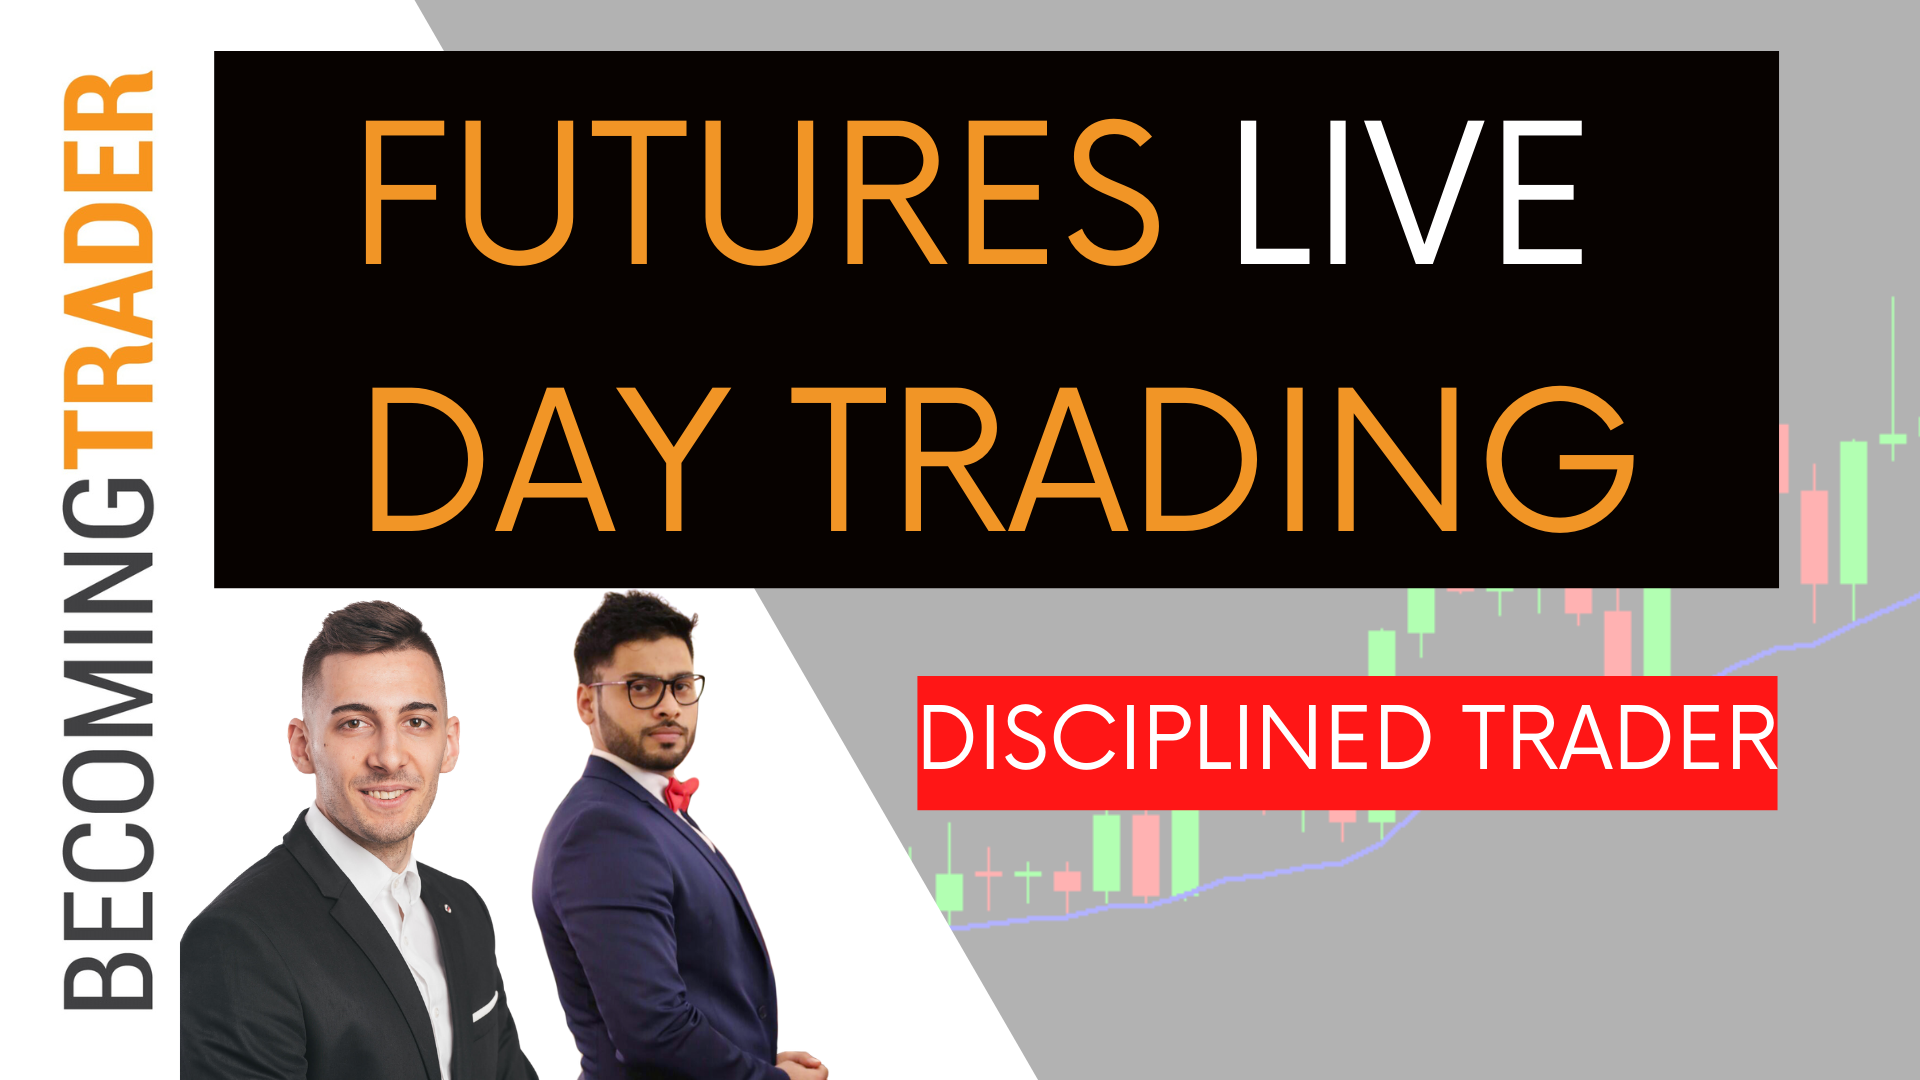 Futures Live Day Trading Session | Disciplined Trader